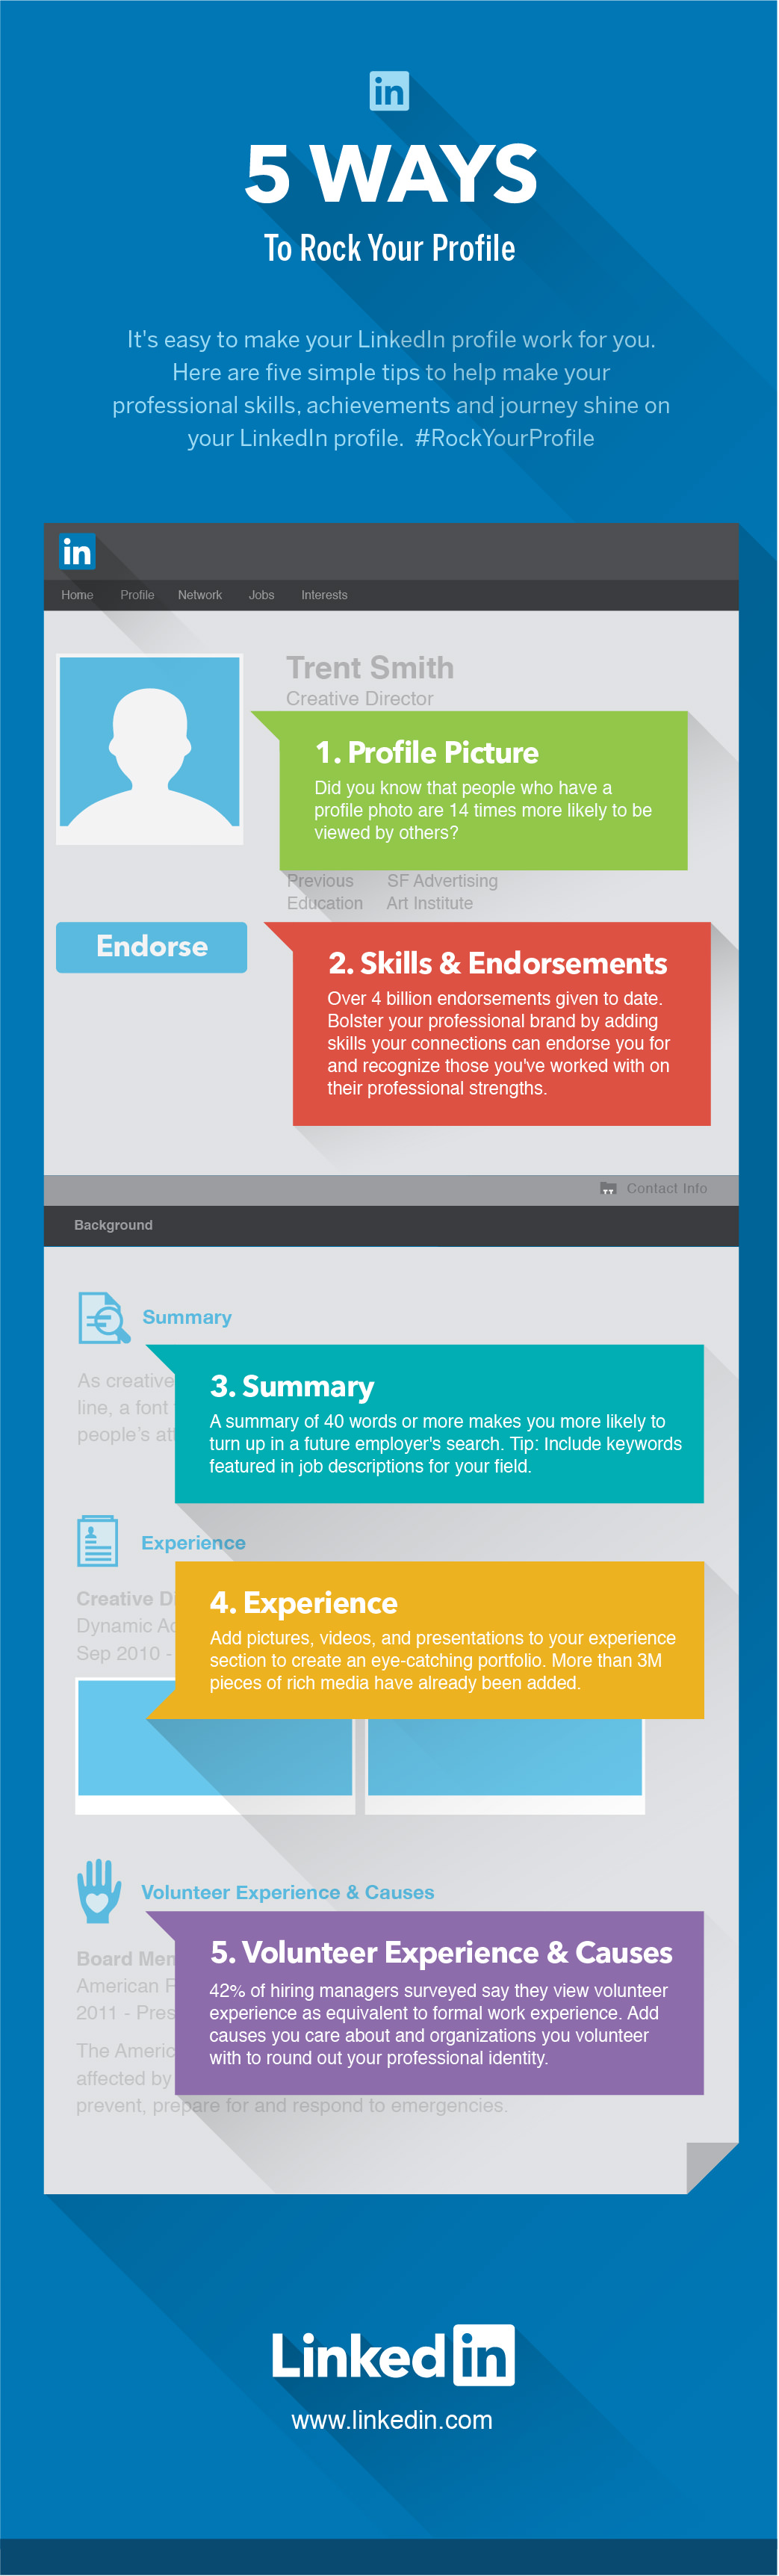 More tips about LinkedIn Profiles (Source: linkedin.com)